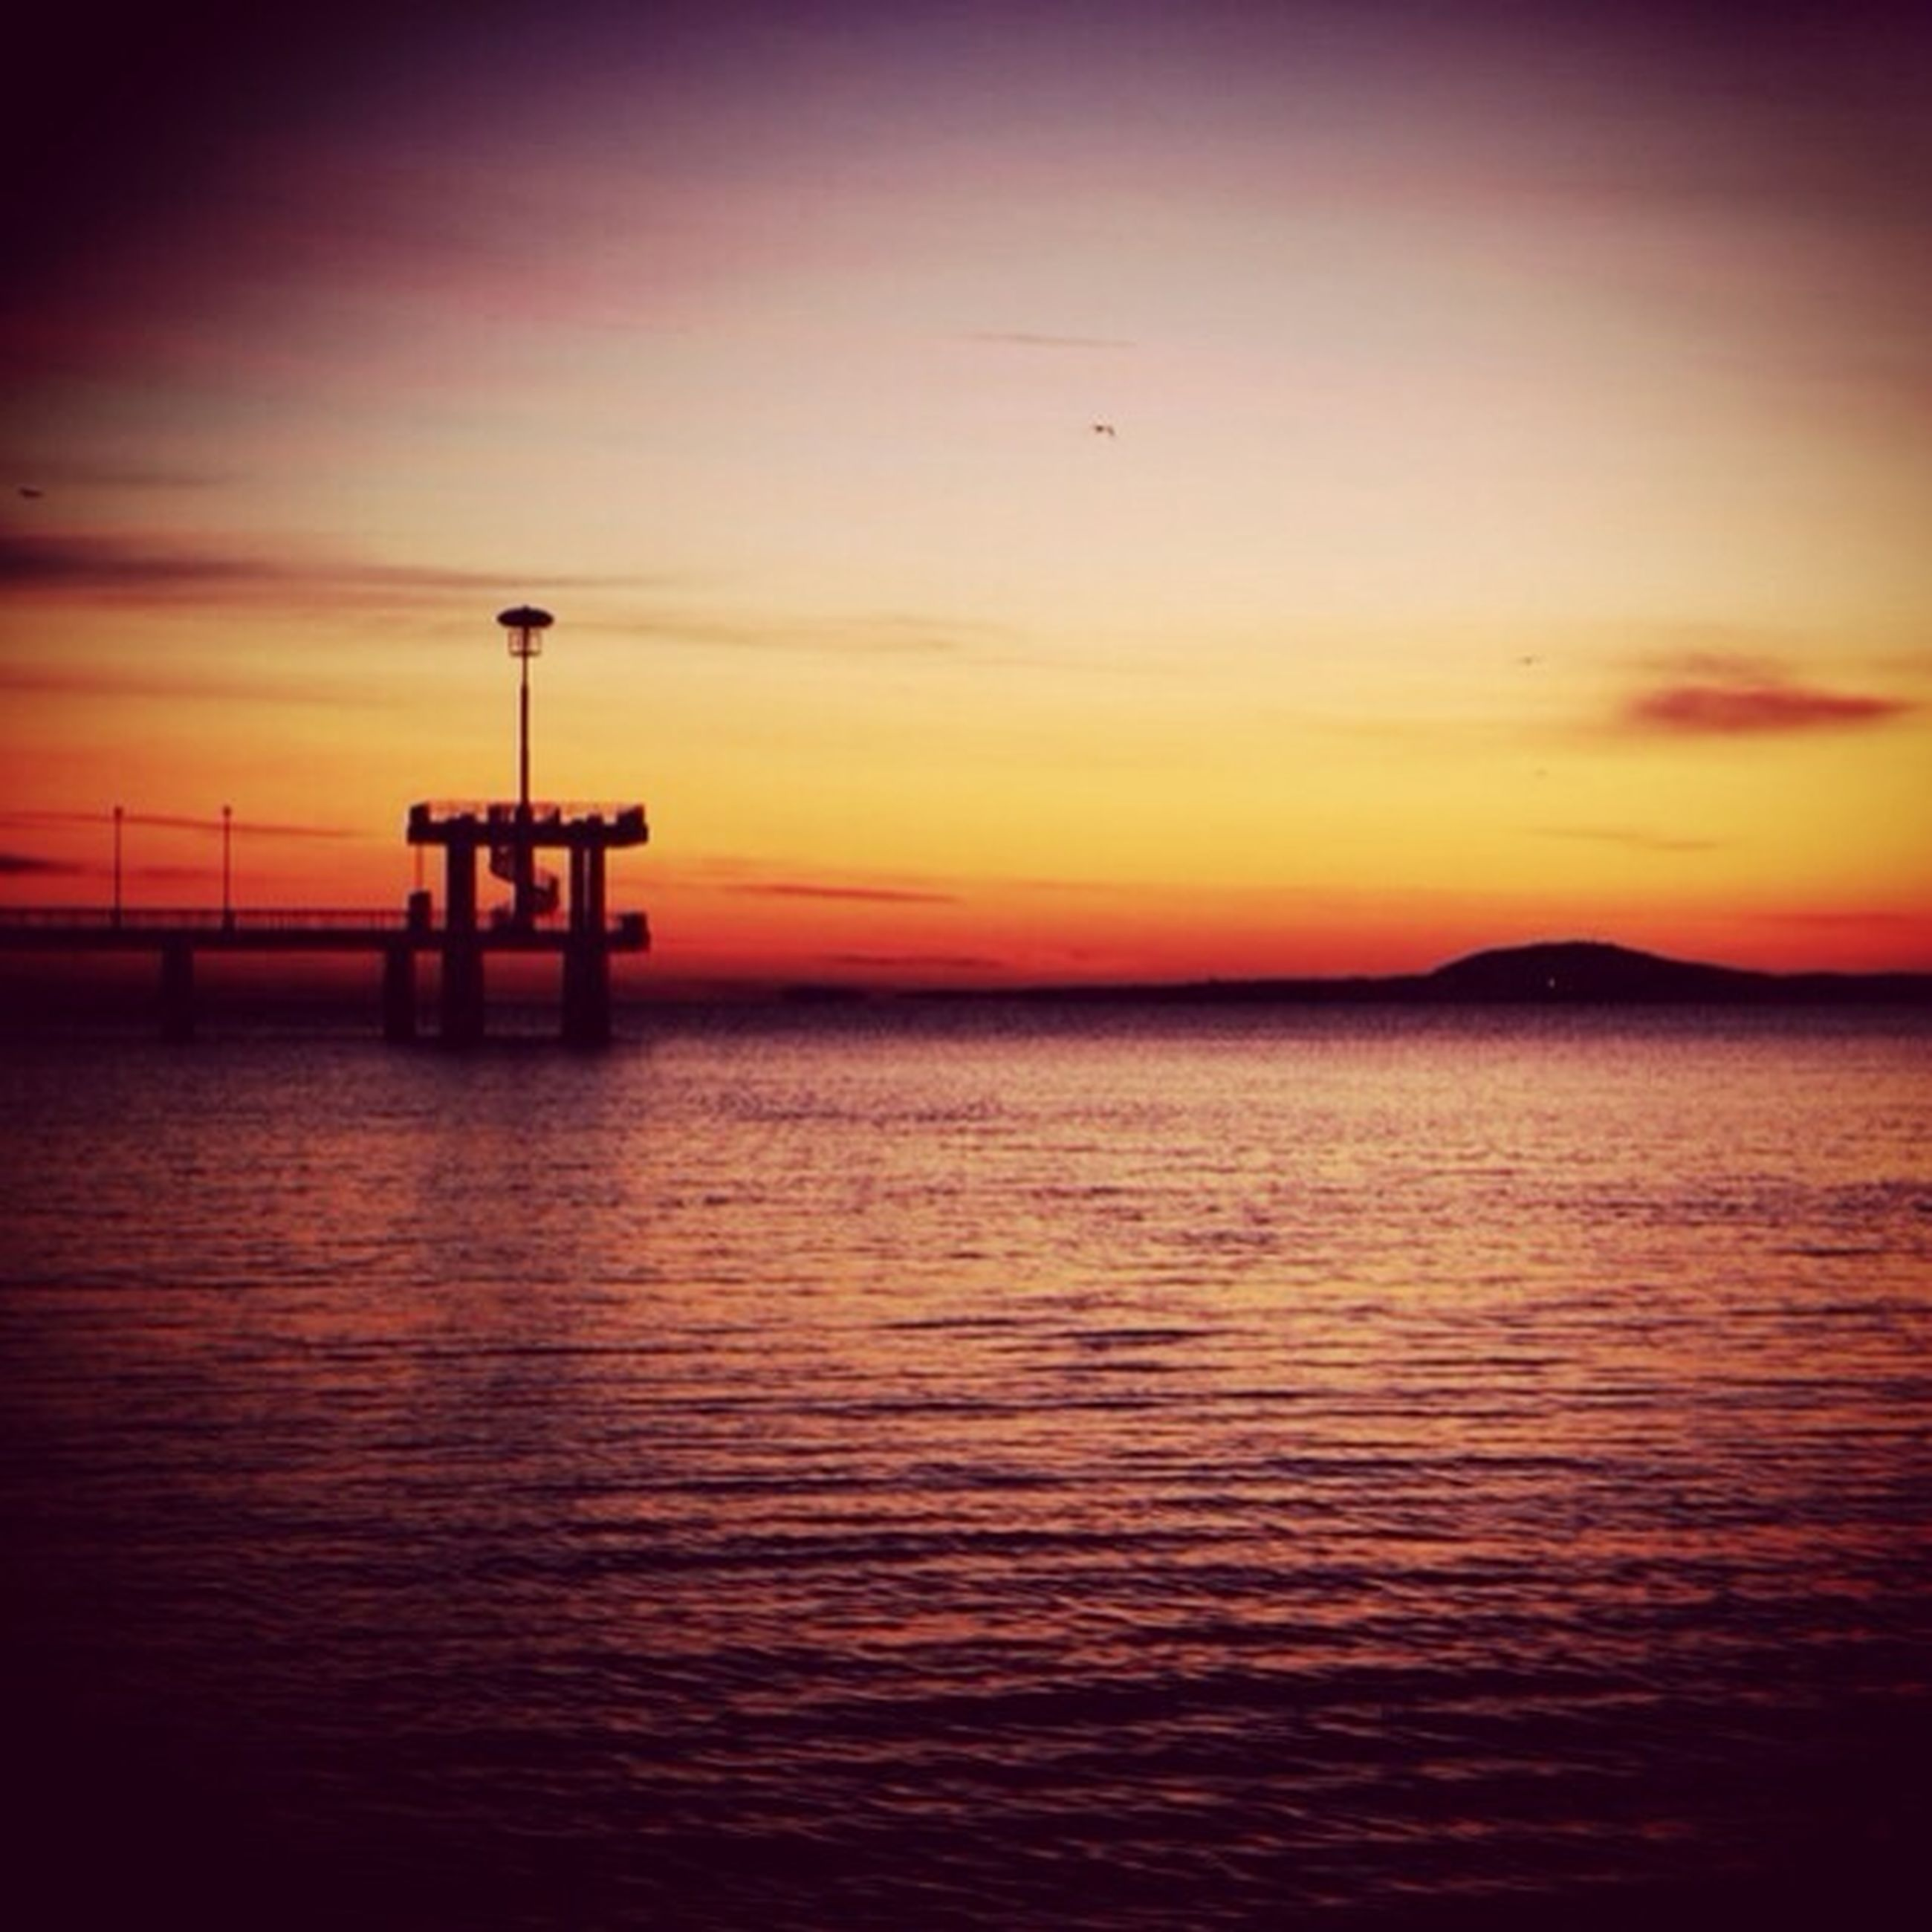 sunset, sea, water, scenics, orange color, tranquil scene, tranquility, sky, beauty in nature, waterfront, horizon over water, silhouette, idyllic, nature, rippled, lighthouse, dusk, ocean, calm, outdoors